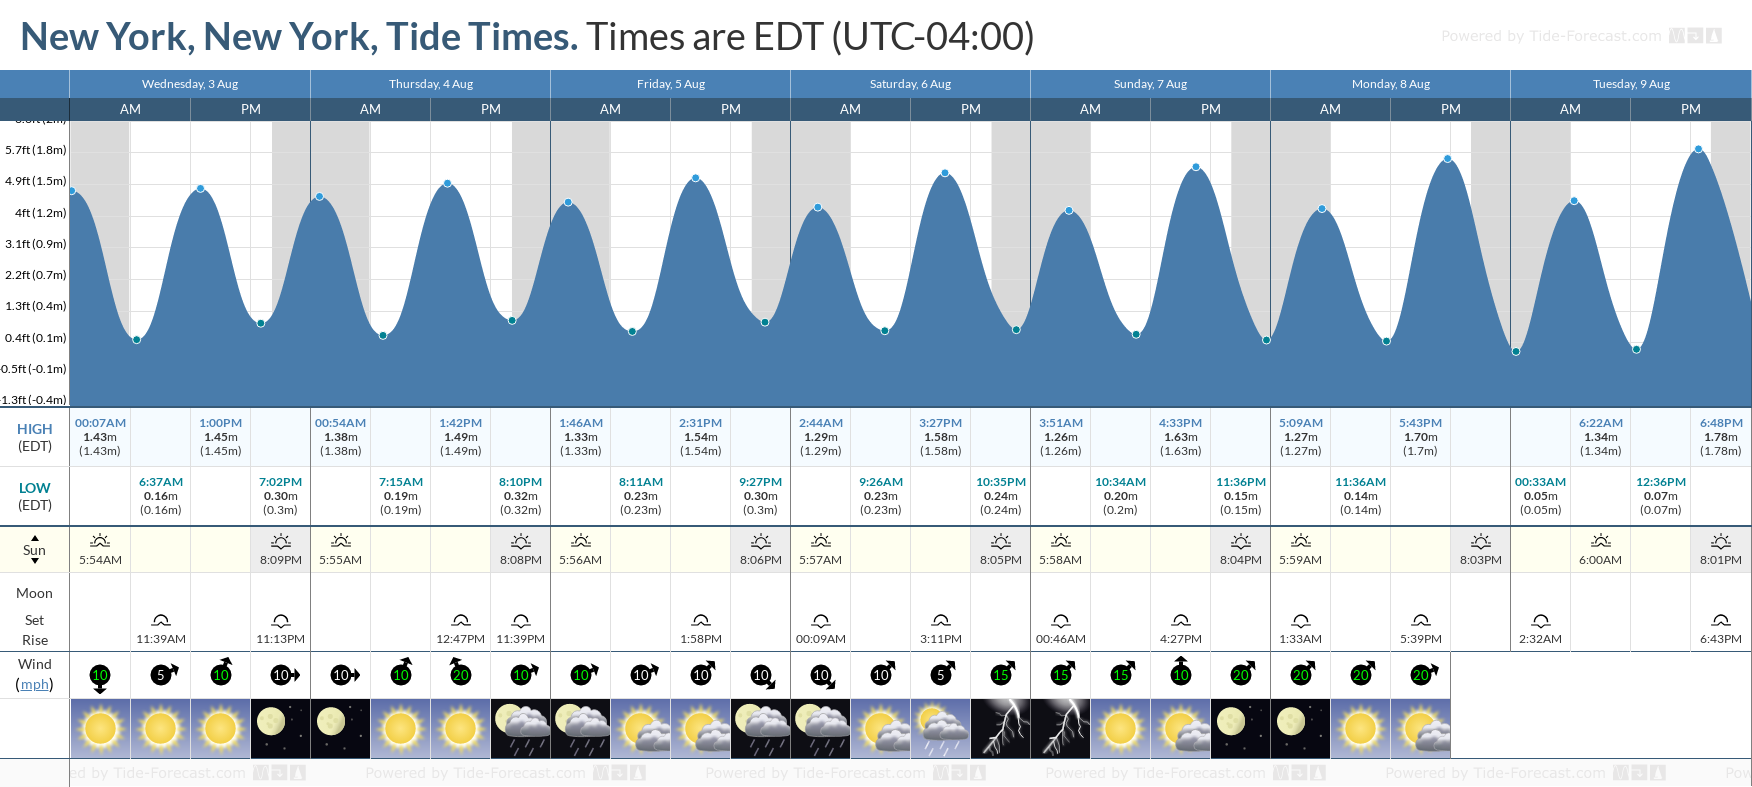 New York, New York Tide Chart including high and low tide tide times for the next 7 days